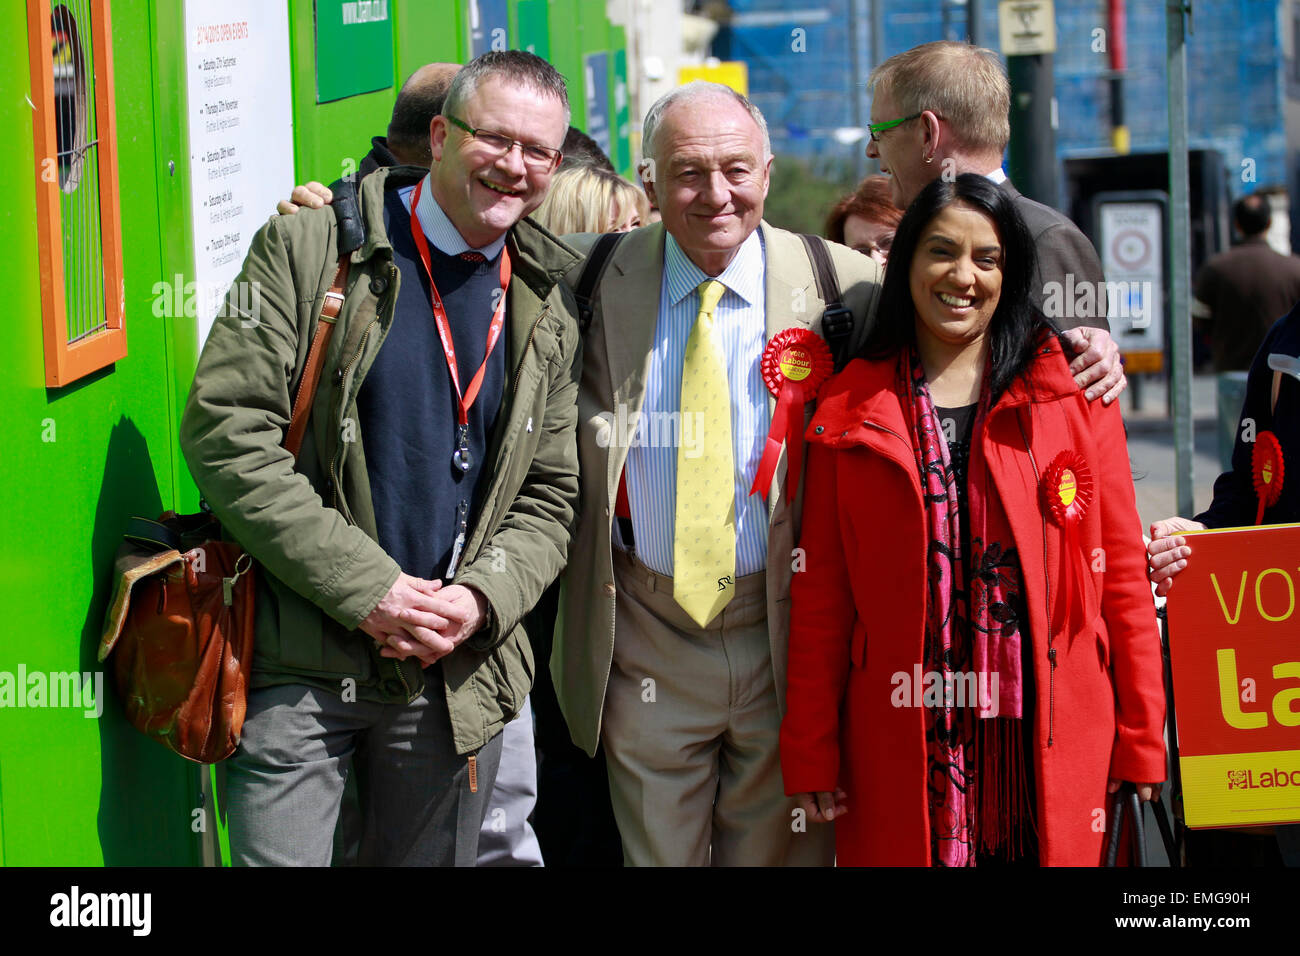 Bradford, West Yorkshire, UK, 20th Apr, 2015. Former Labour MP and Mayor of London Ken Livingstone in Bradford to Stock Photo